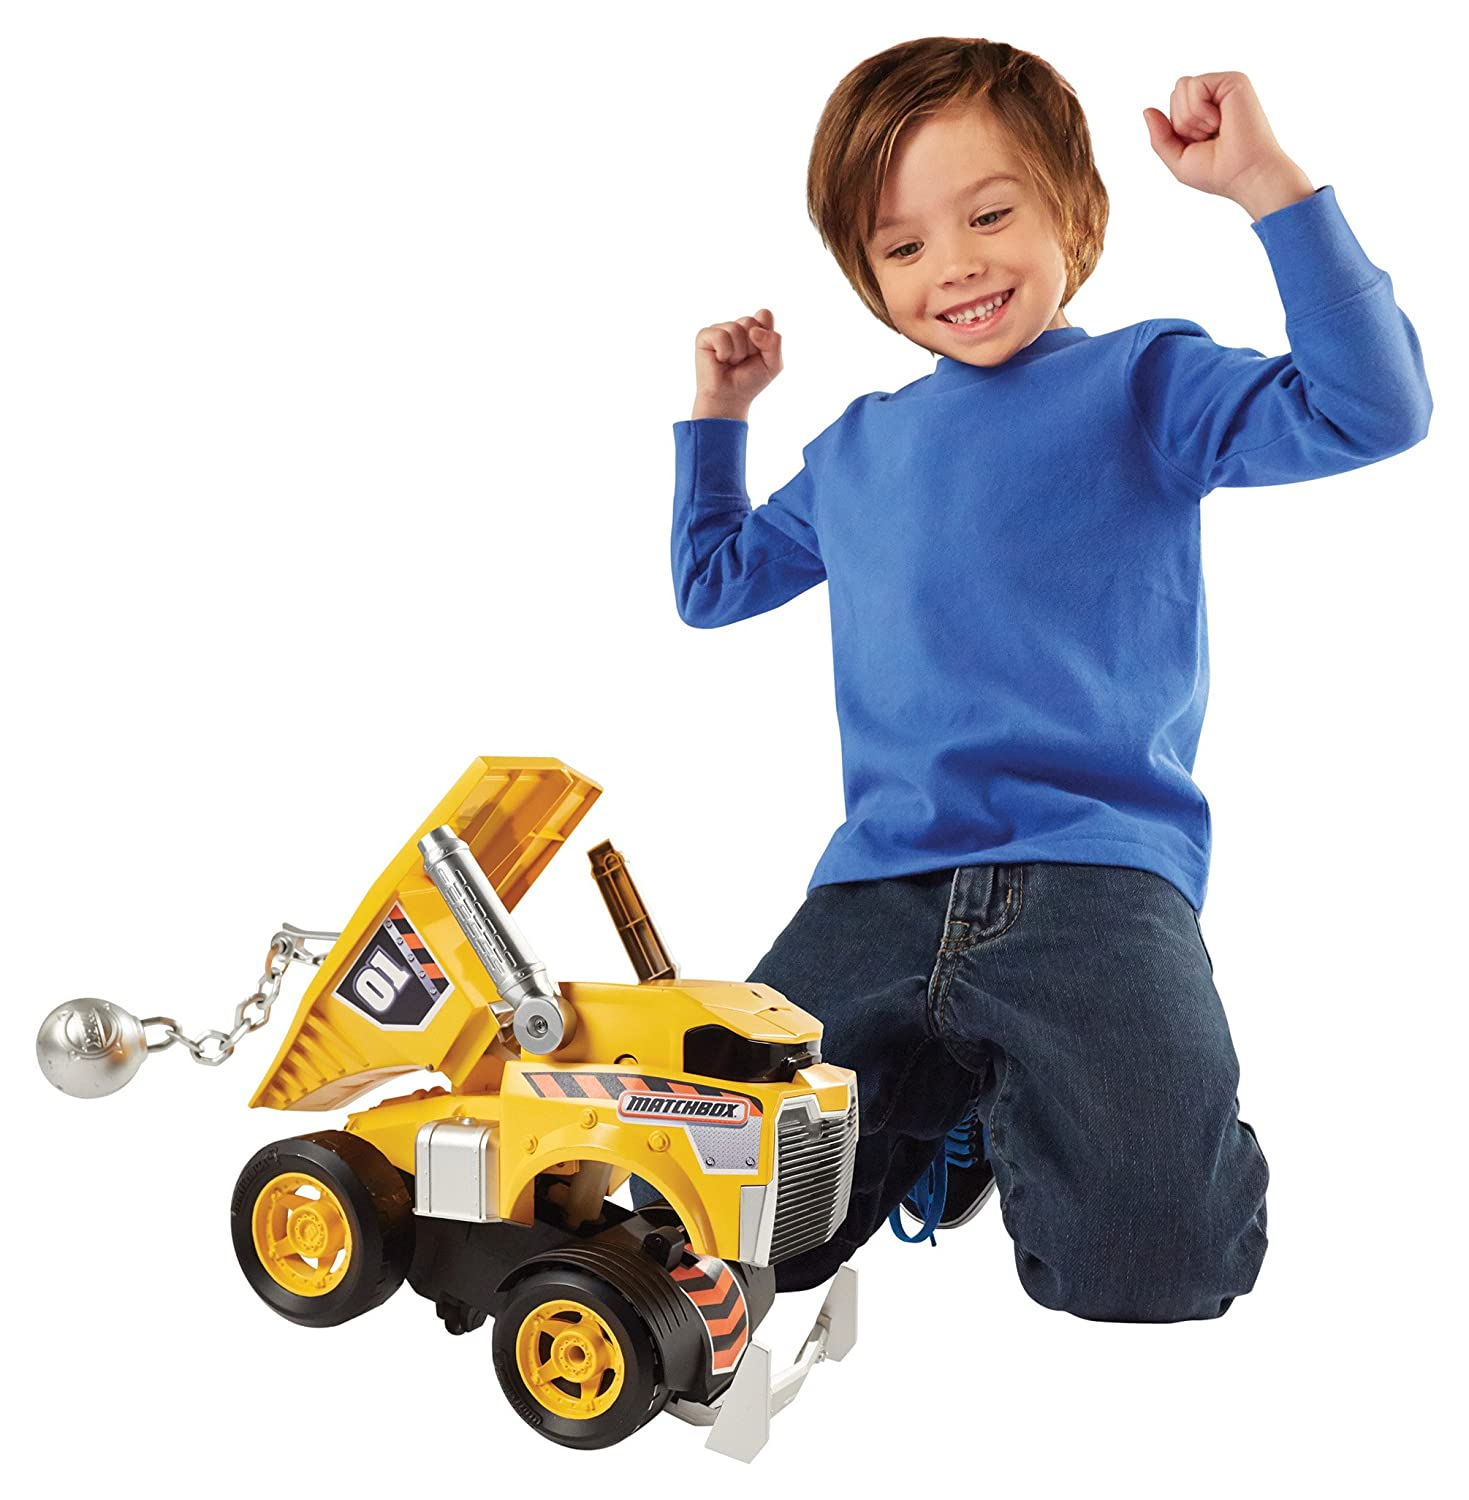 Cool Building Toys For Boys : Matchbox wrecky the wrecking buddy off from amazon and